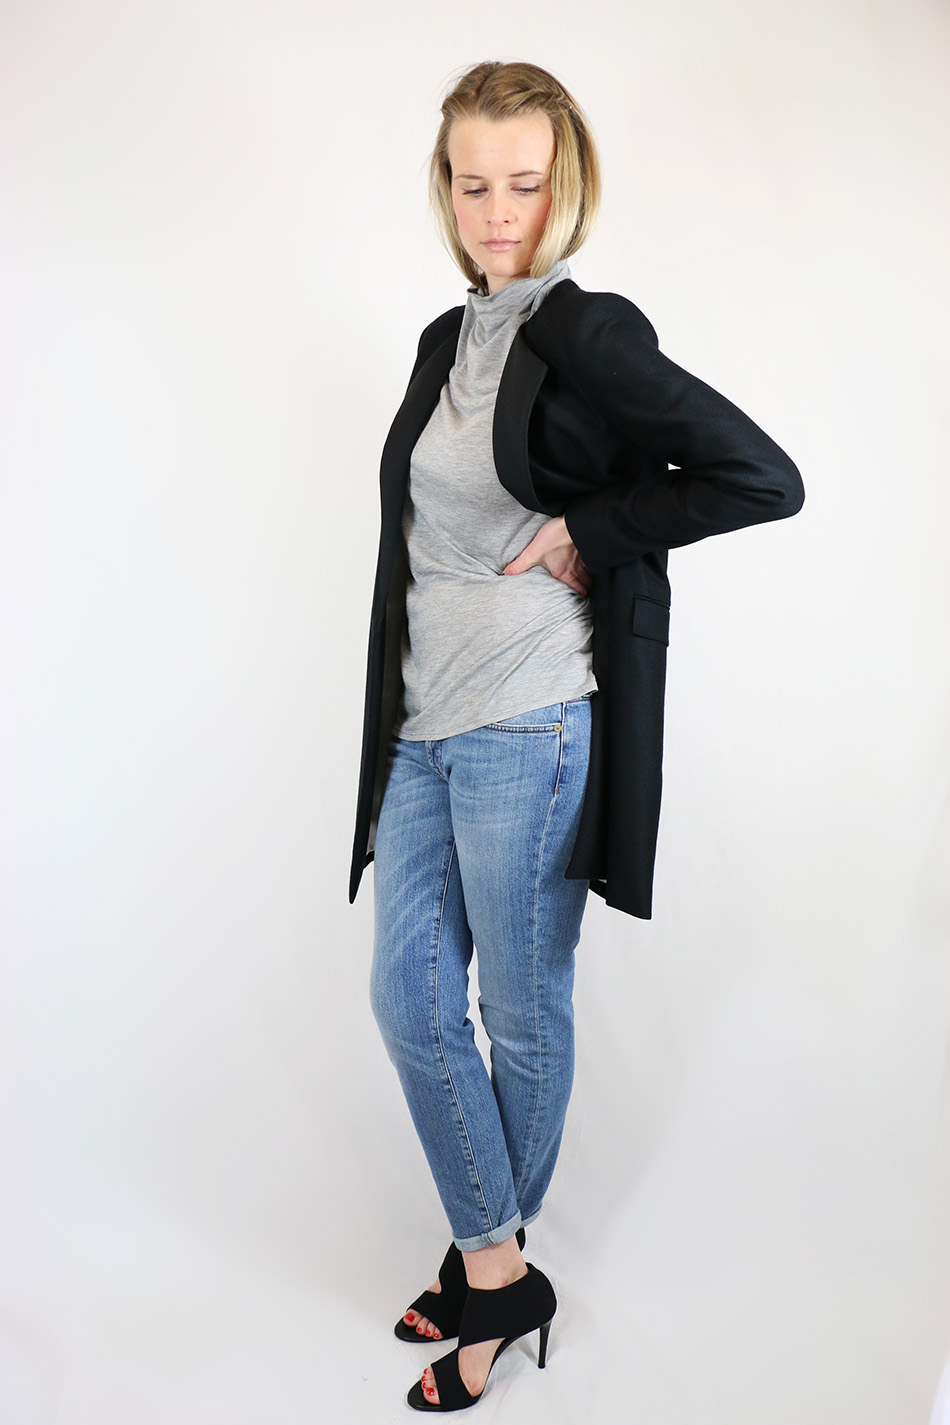 Fringe and Doll BMB Blazer and jeans IMG_1559edit